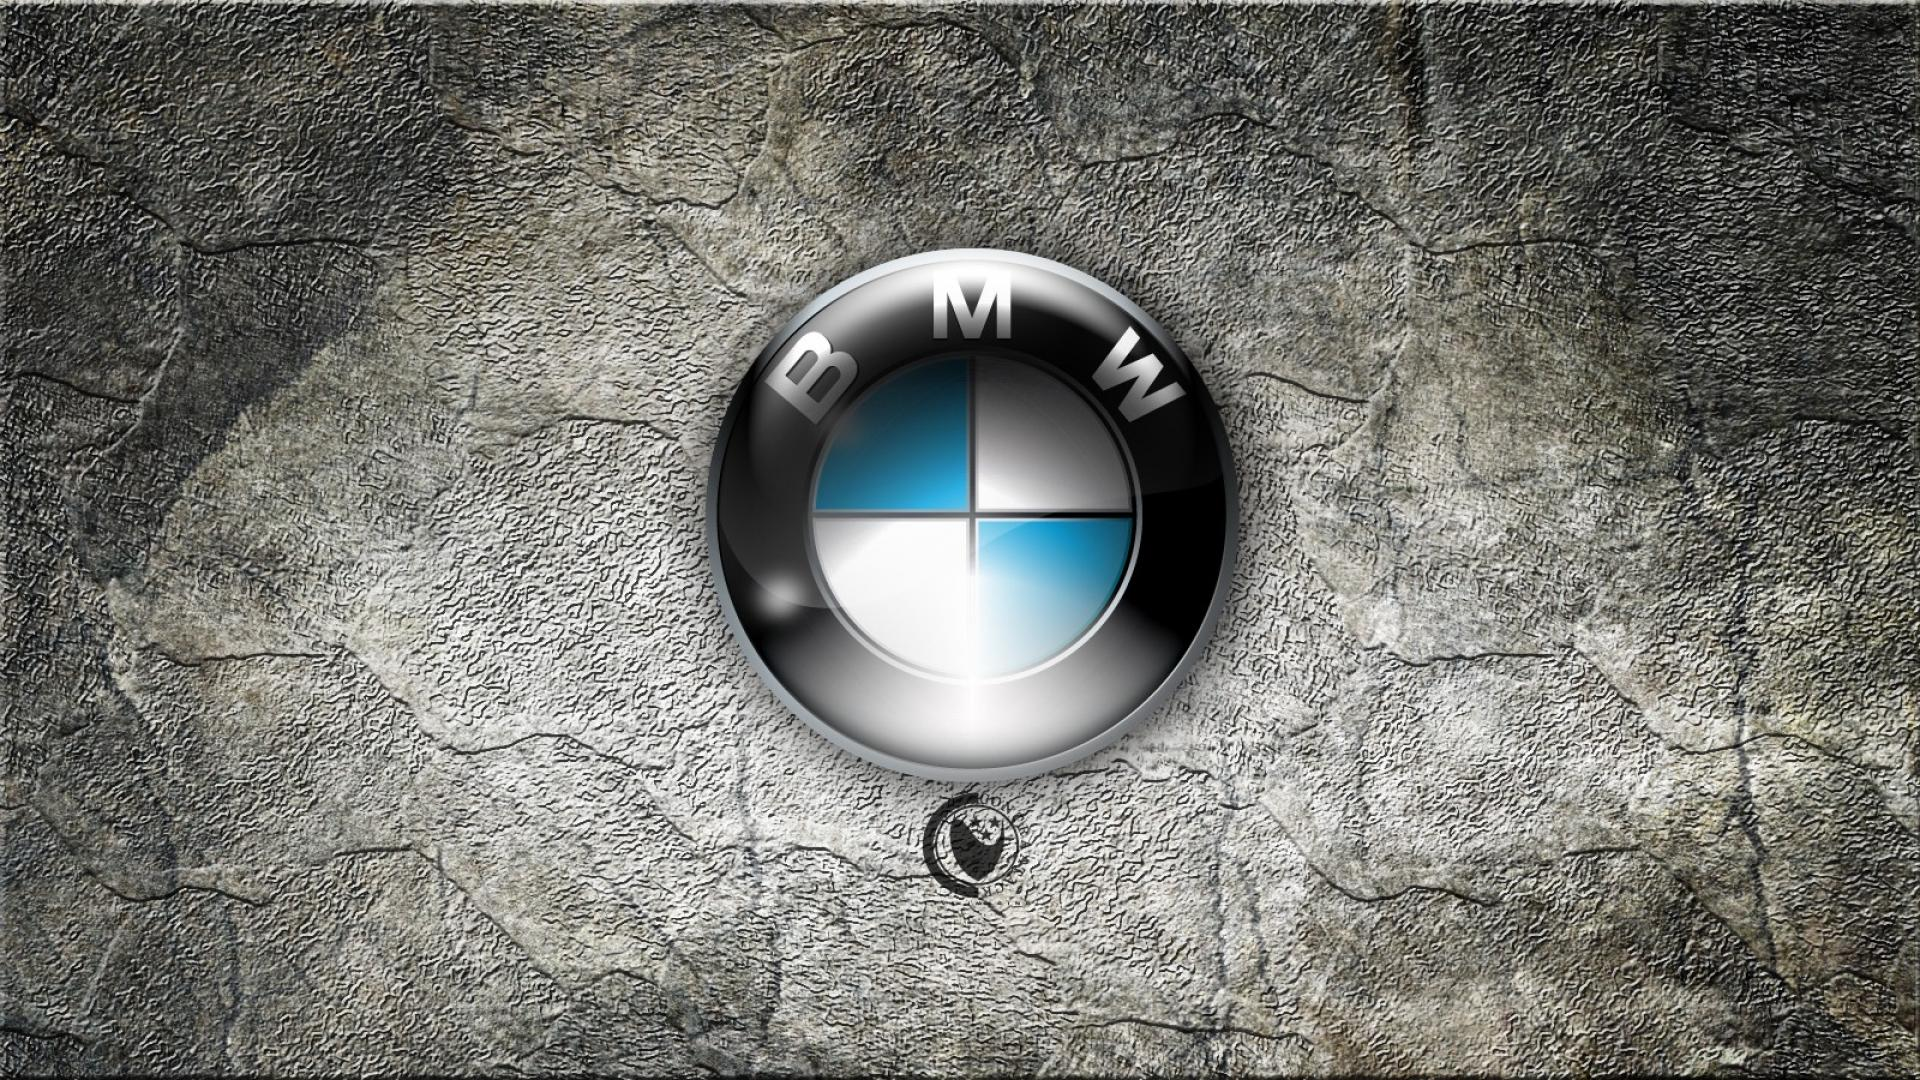 Brand Logo HD Wallpapers for all resolution HD 1920x1080 Brand 1920x1080